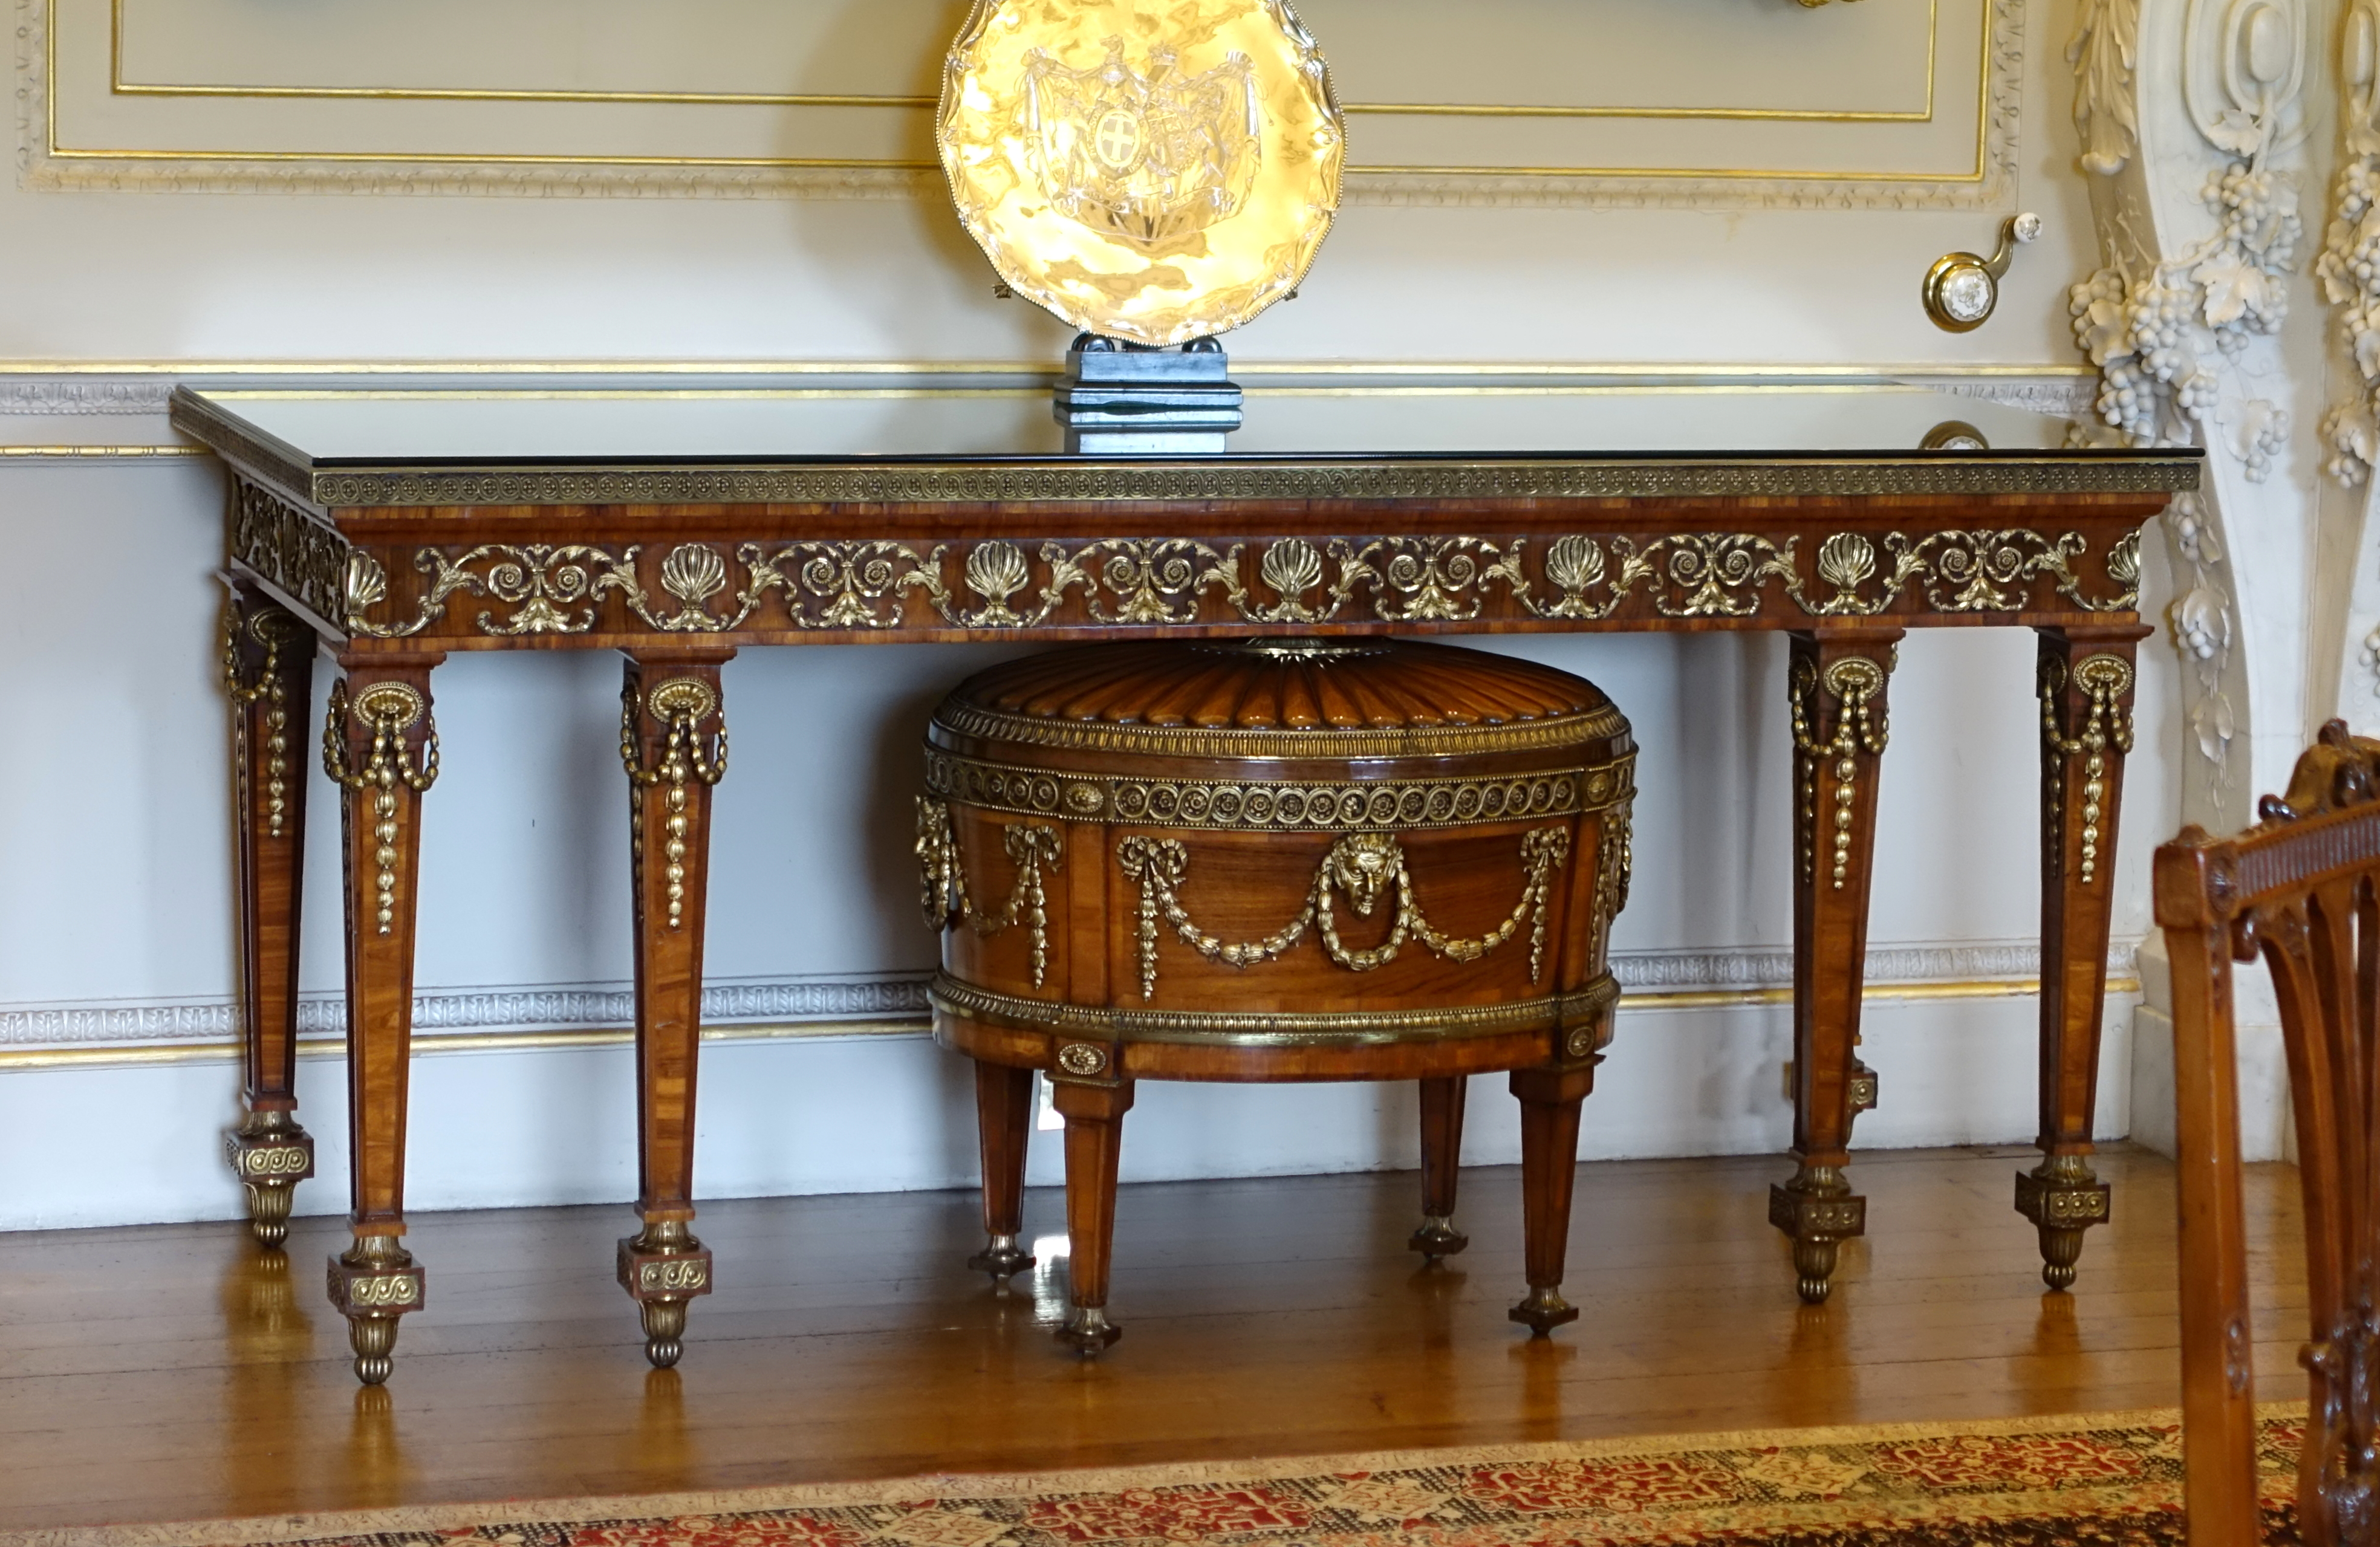 FilePier Table Origin Unknown With Cellaret By Thomas Chippendale C 1771 Rosewood And Ormolu